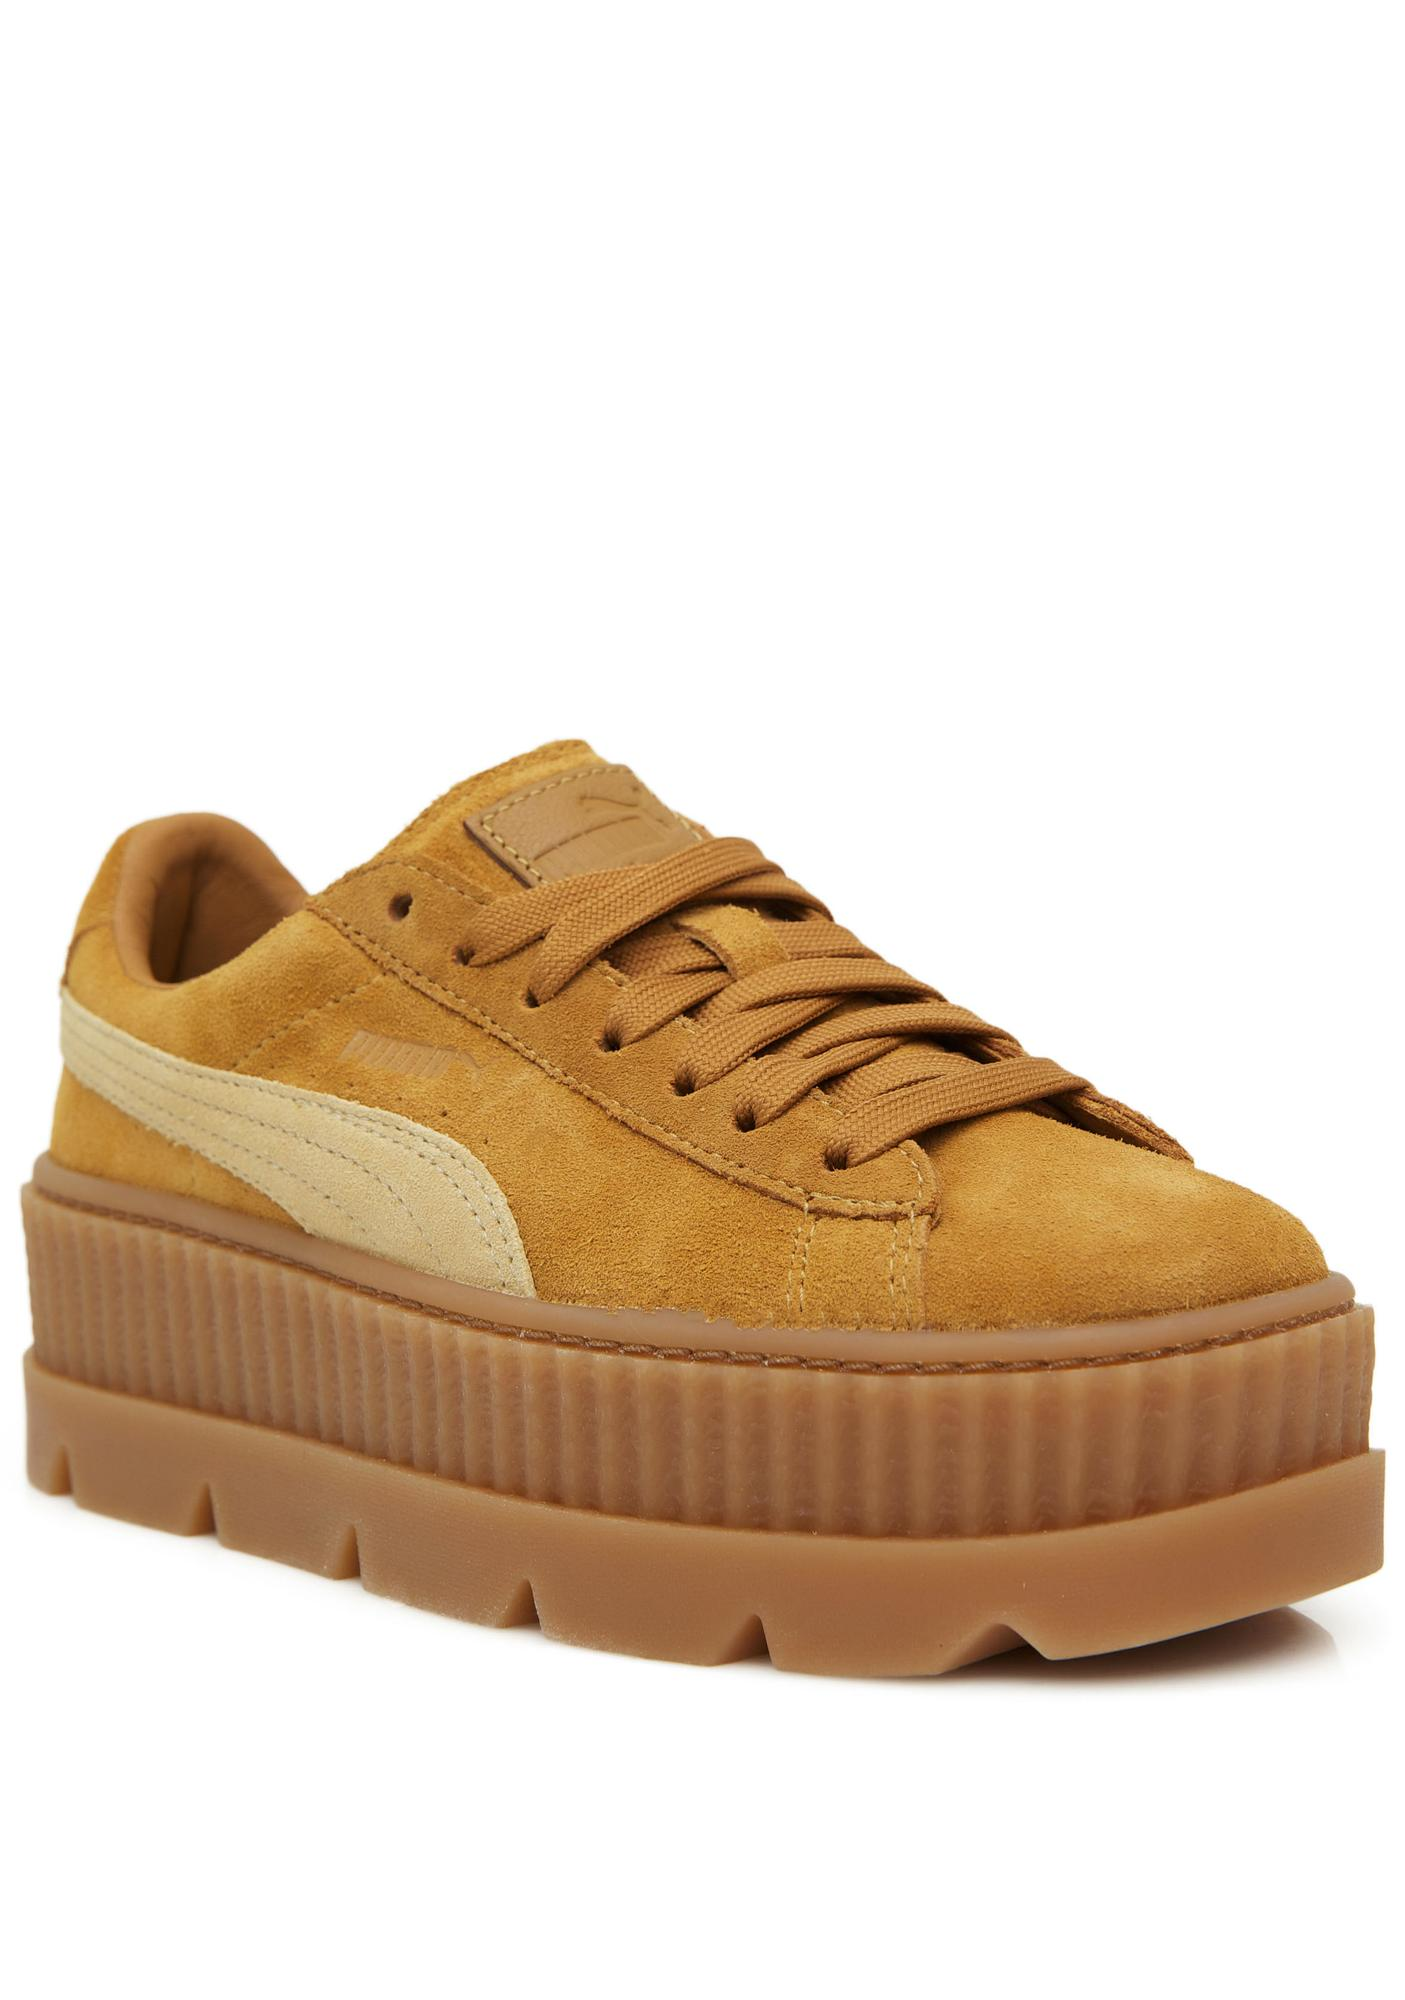 puma creeper rihanna wit